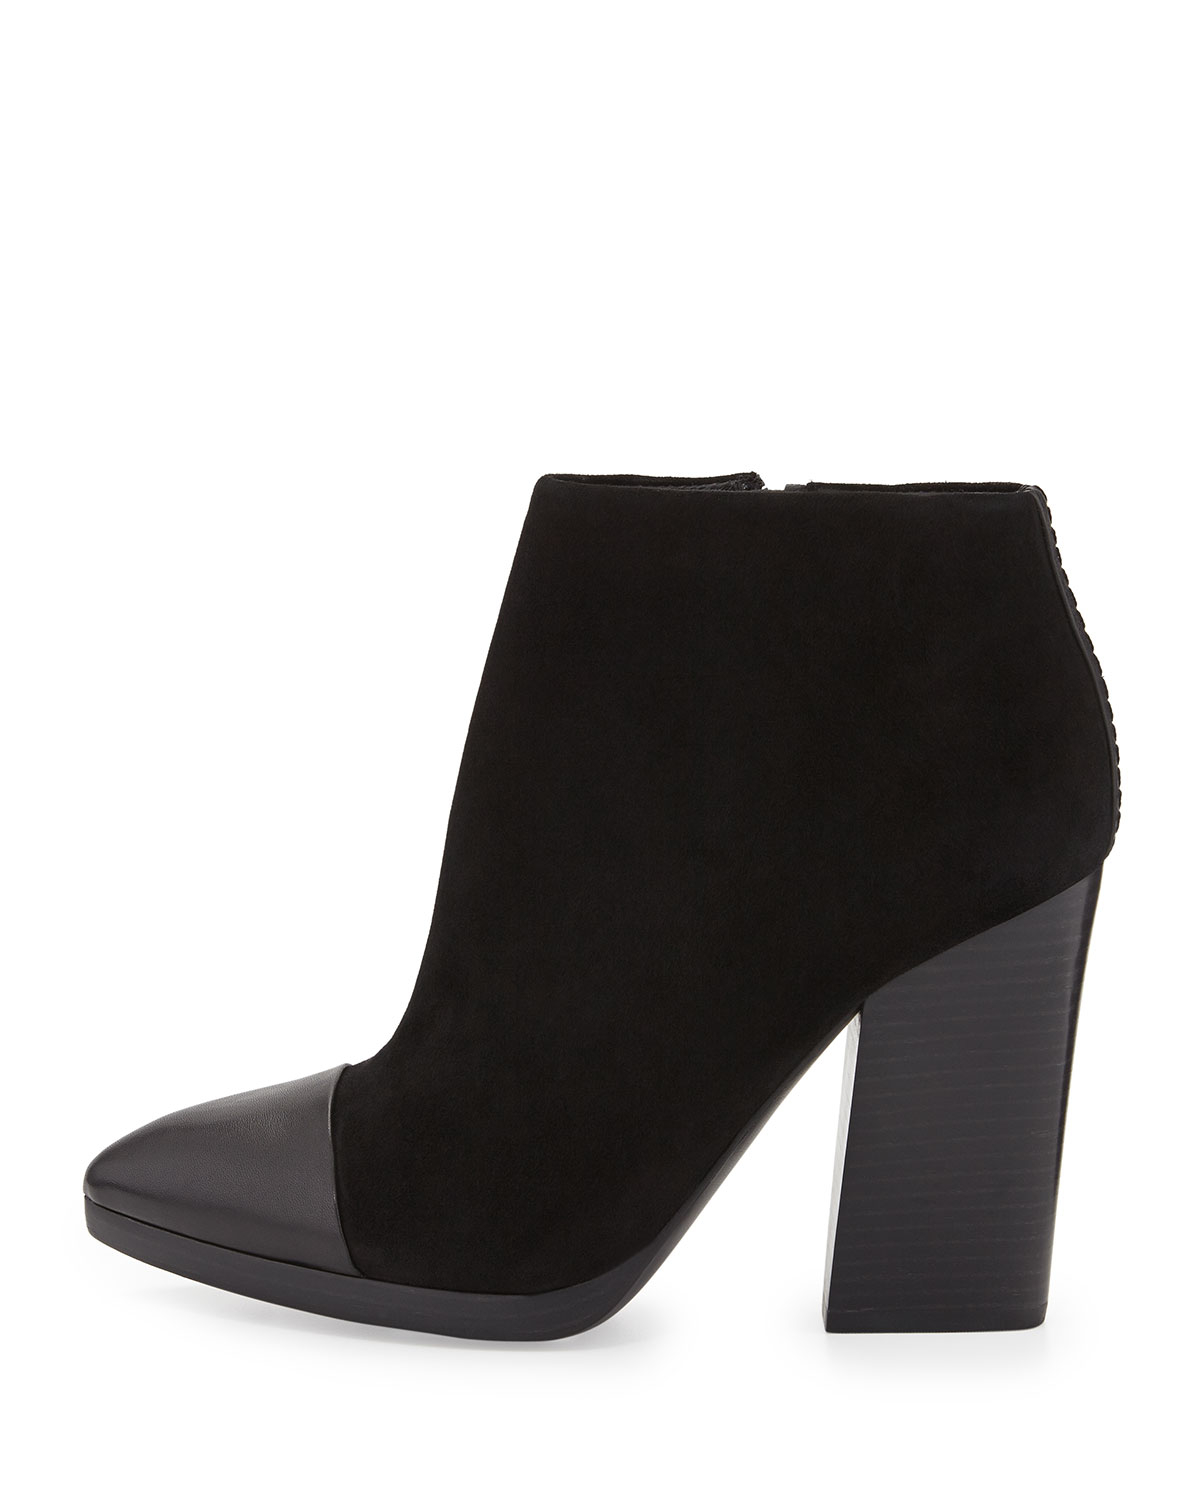 0f8176d45ae6 Lyst - Tory Burch Rivington Suede Cap-toe Ankle Boot in Black